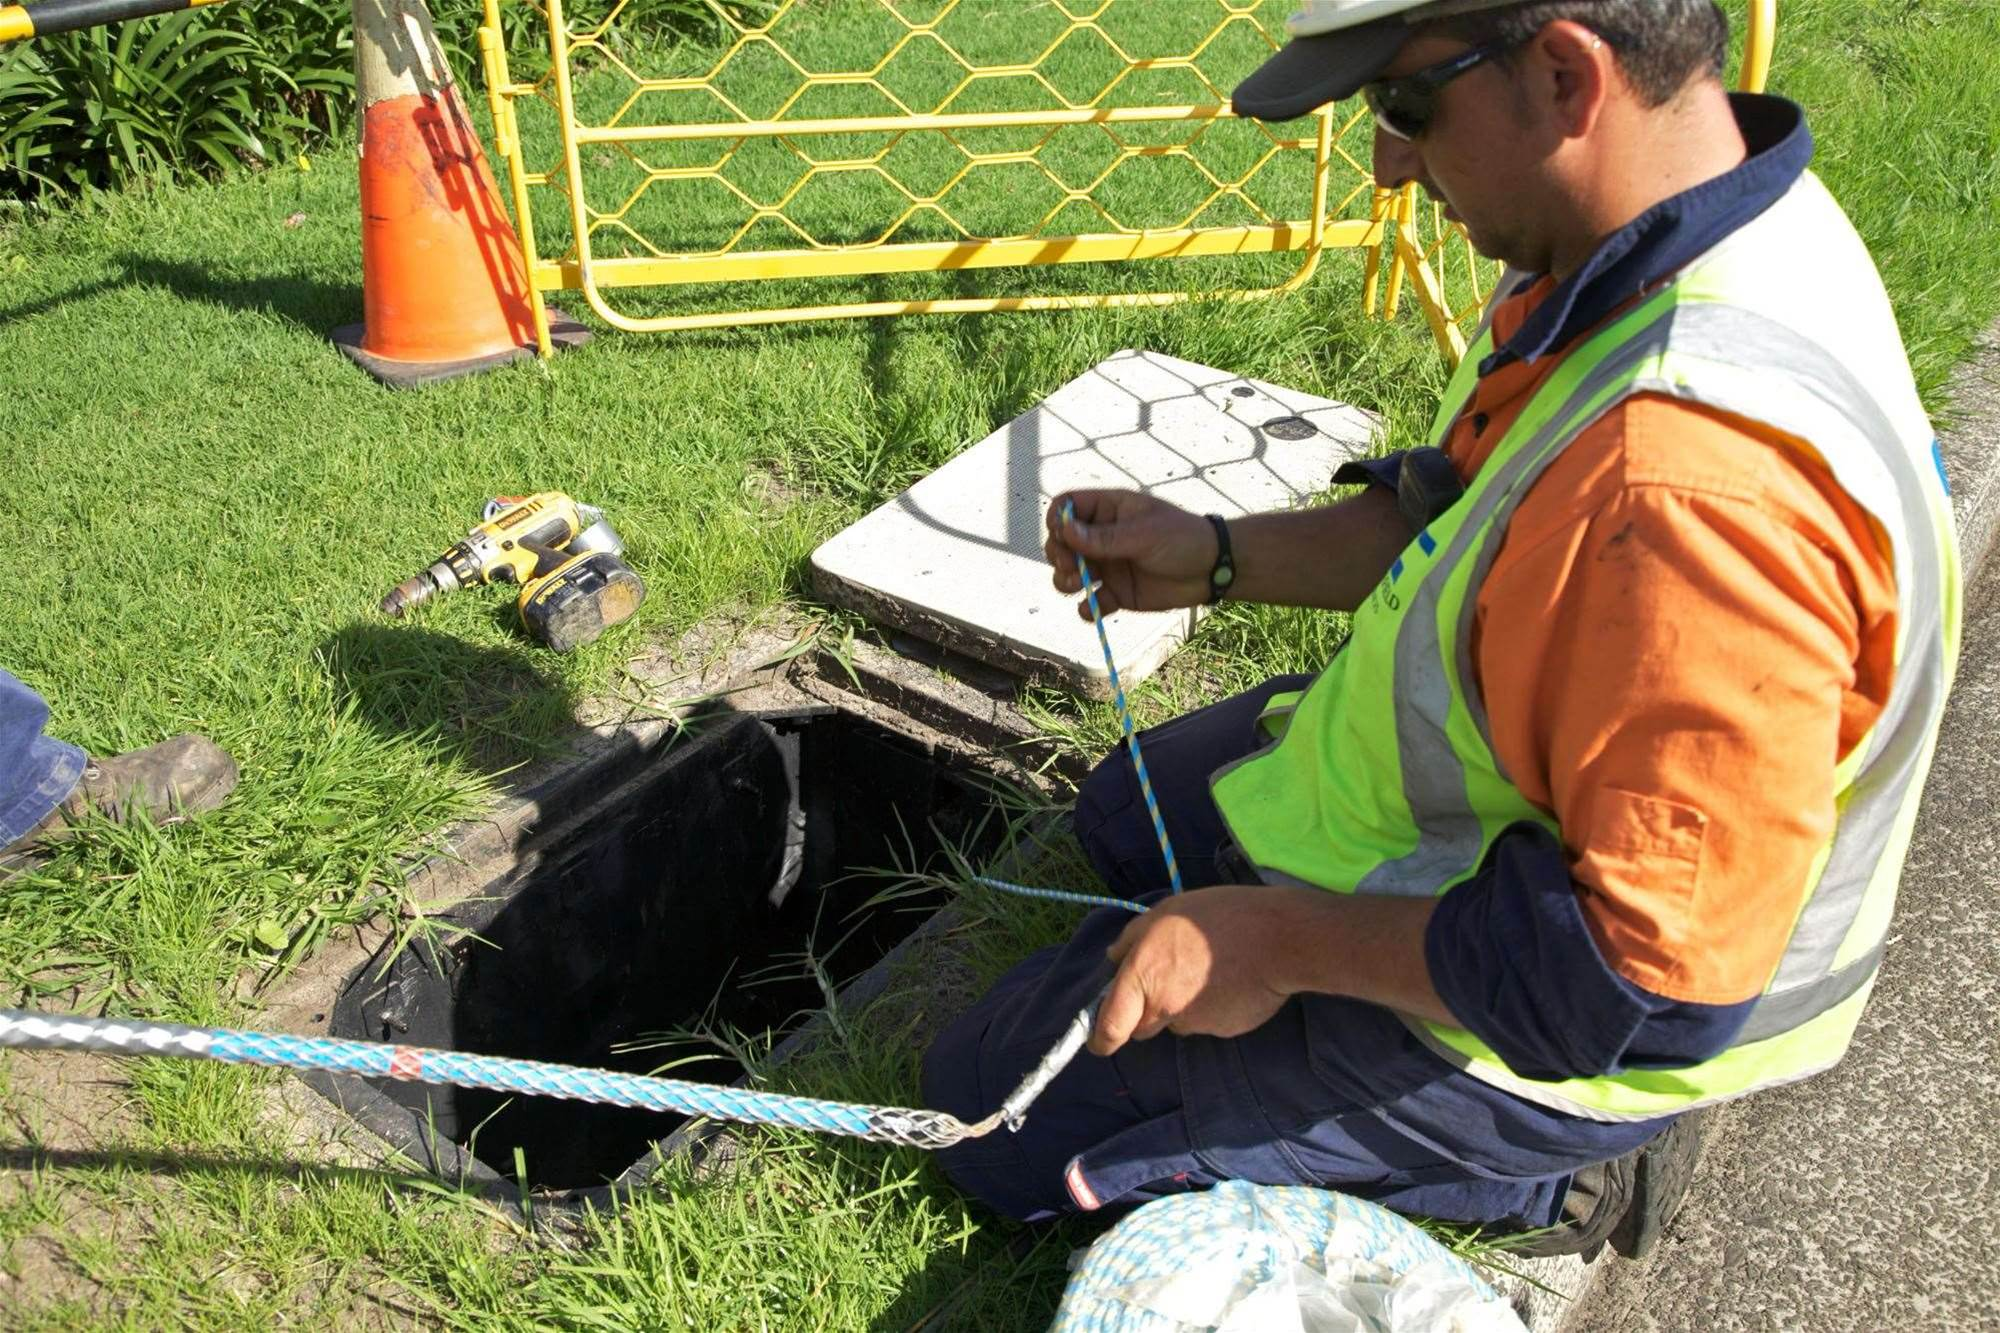 165,000 premises added to the NBN rollout